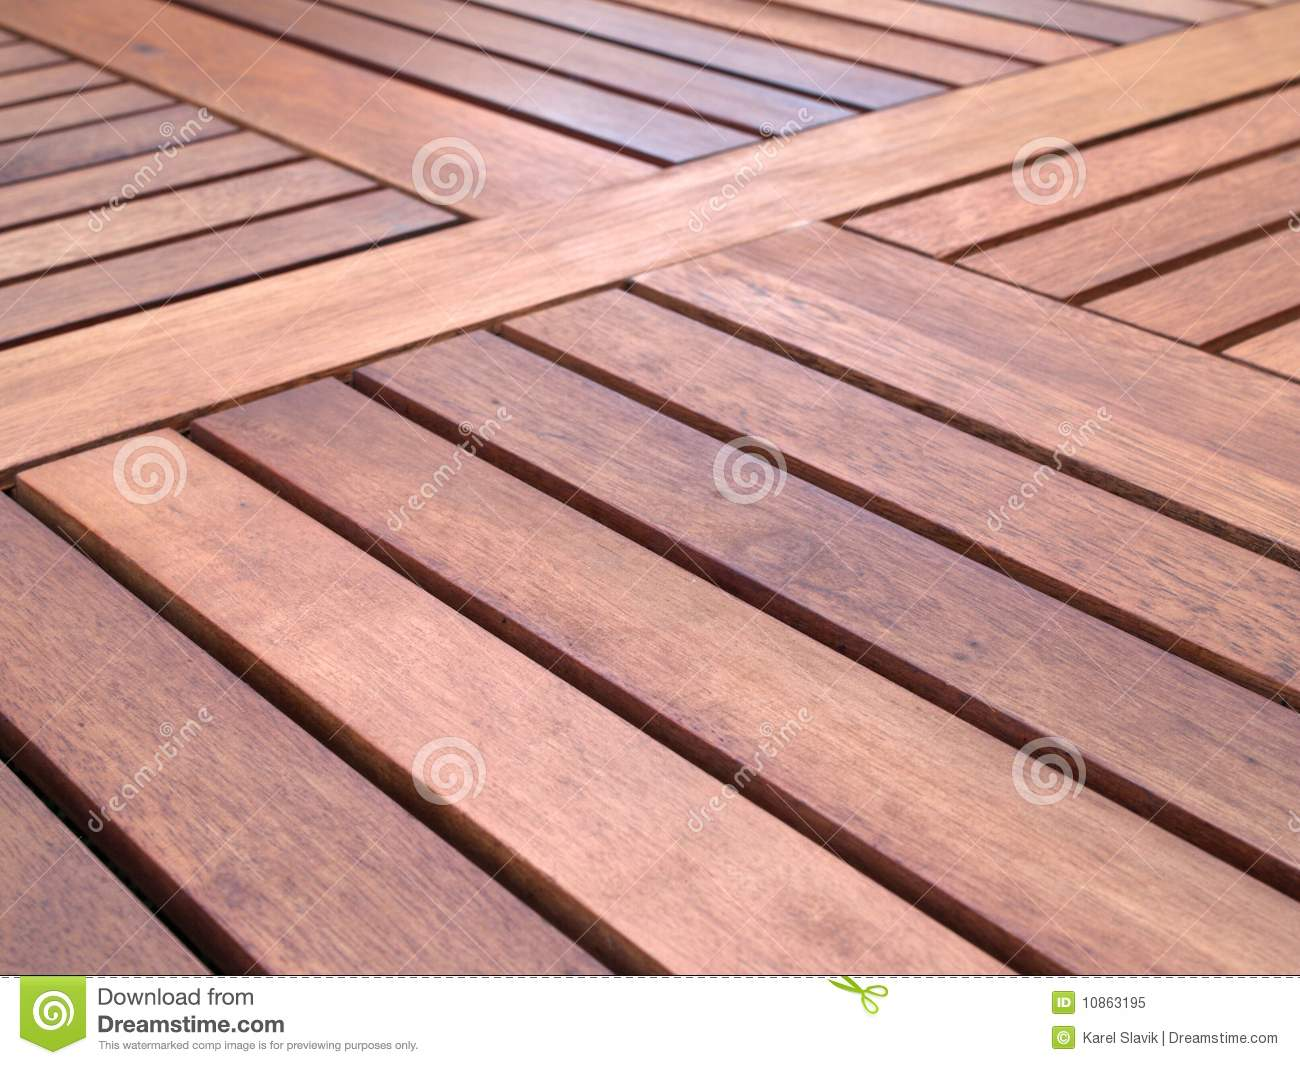 Wooden Table Surface ~ Wooden table surface stock image of seamless rows